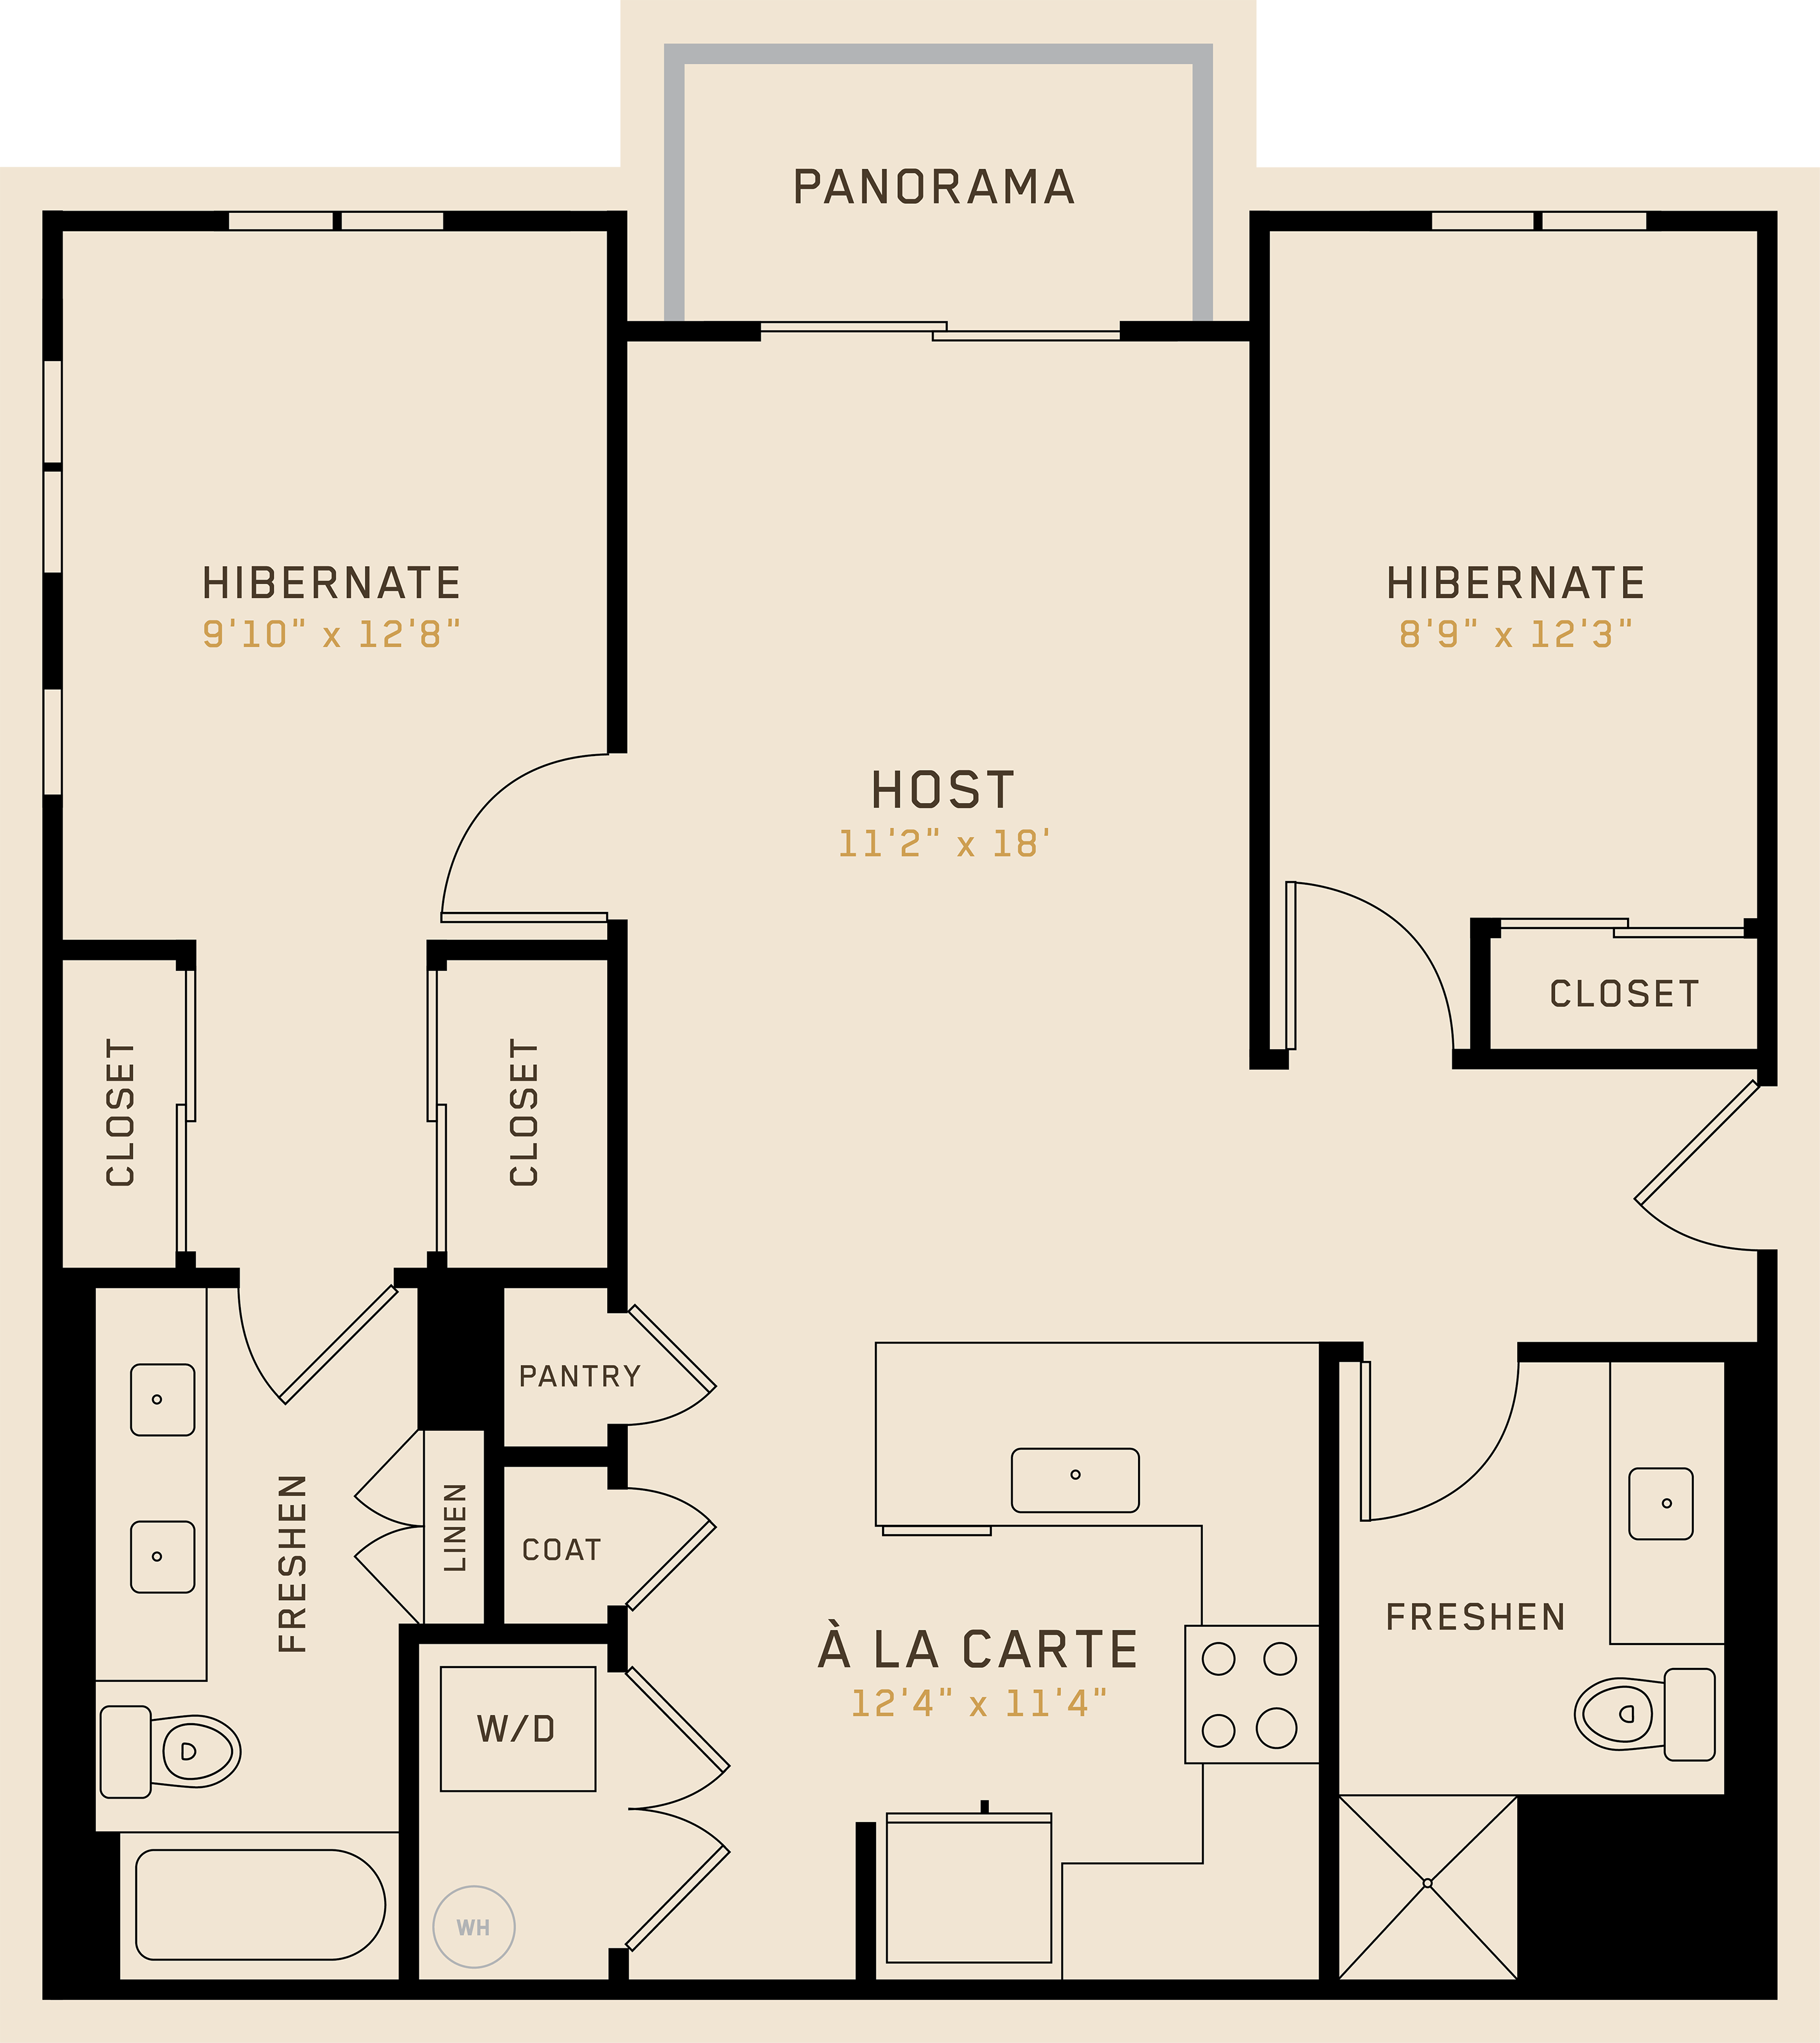 B2F floor plan featuring 2 bedrooms, 2 bathrooms, and is 985 square feet